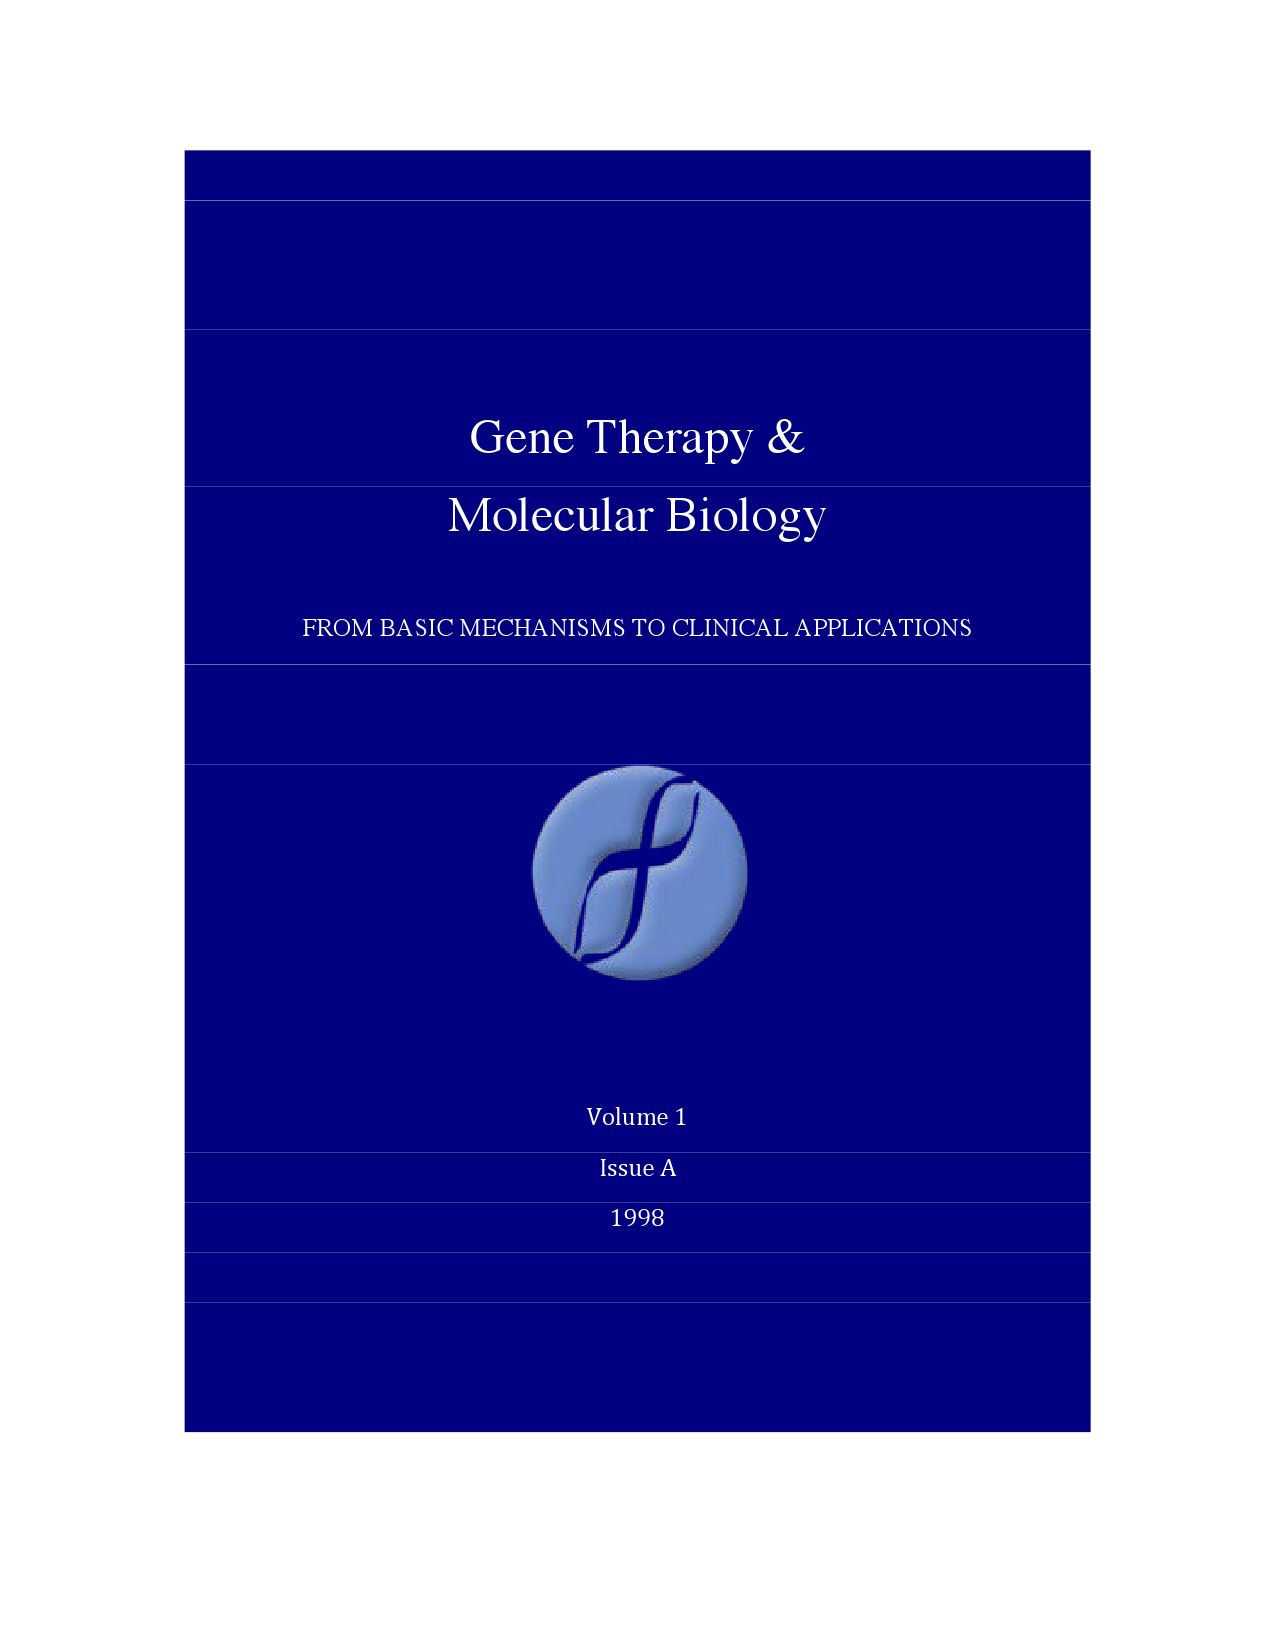 Gene Therapy & Molecular Biology Volume 1 Issue A - PART 1